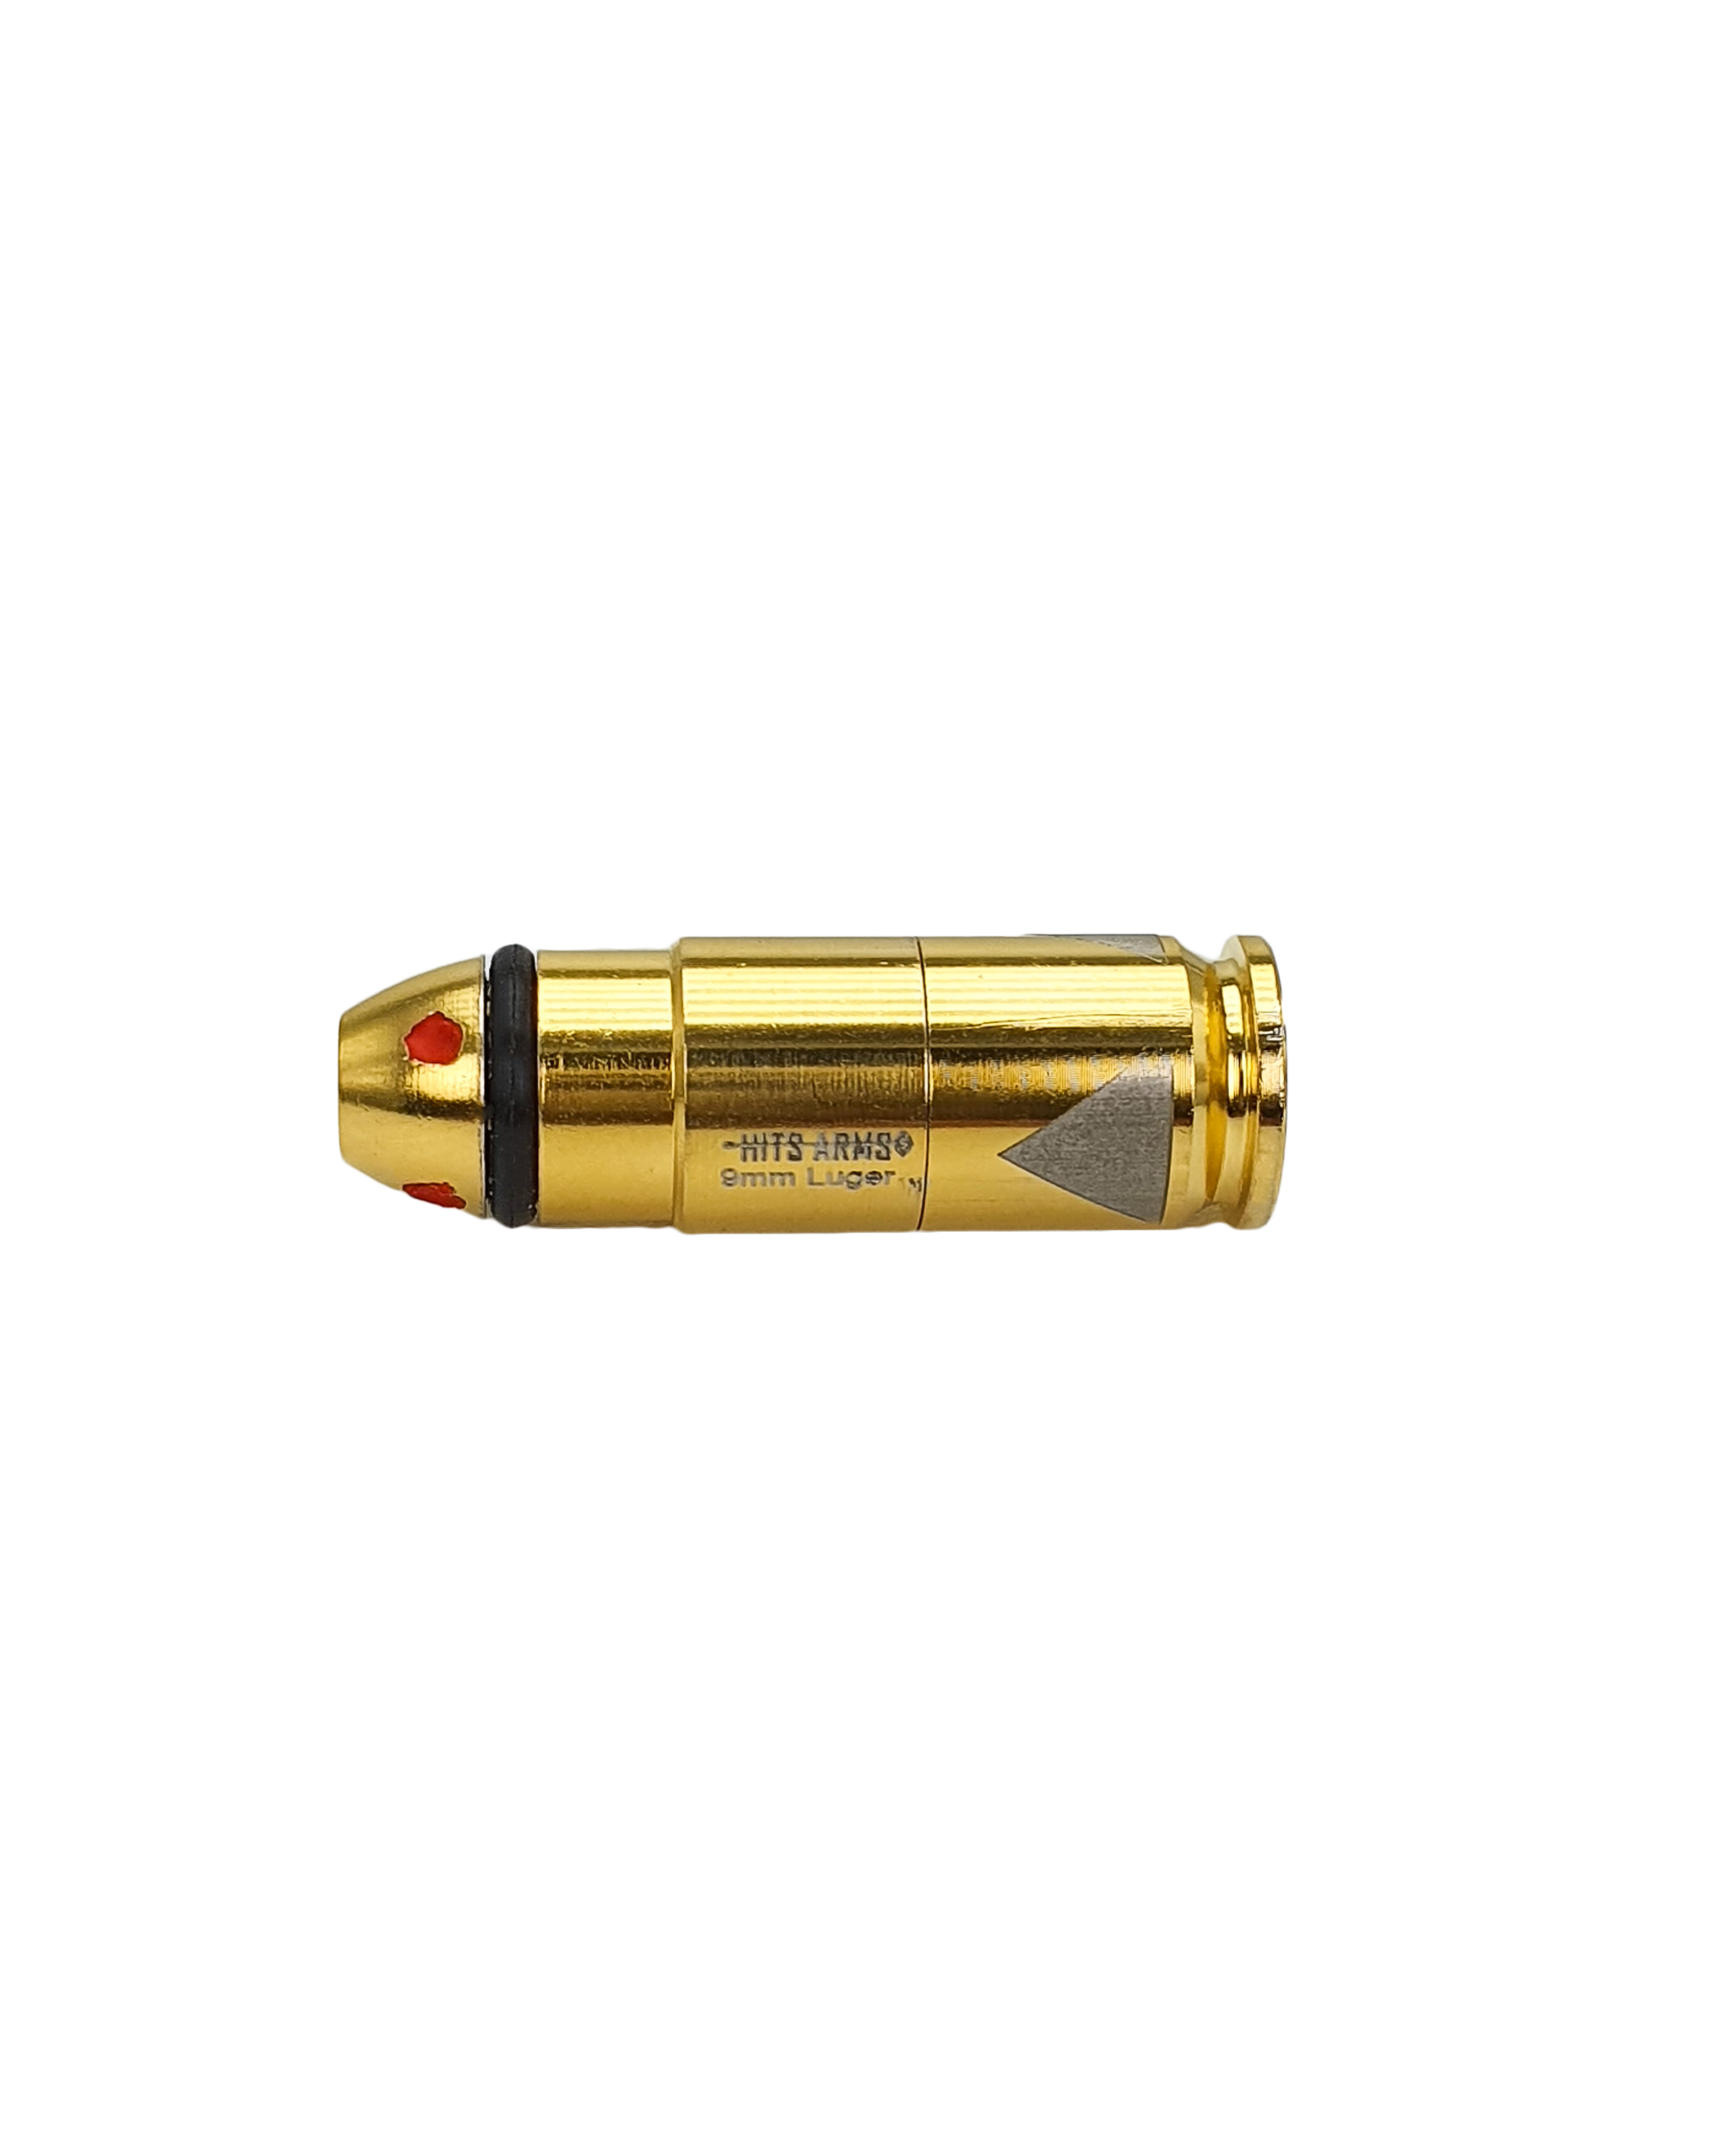 hits arms gen. 2 laser bullet dry fire